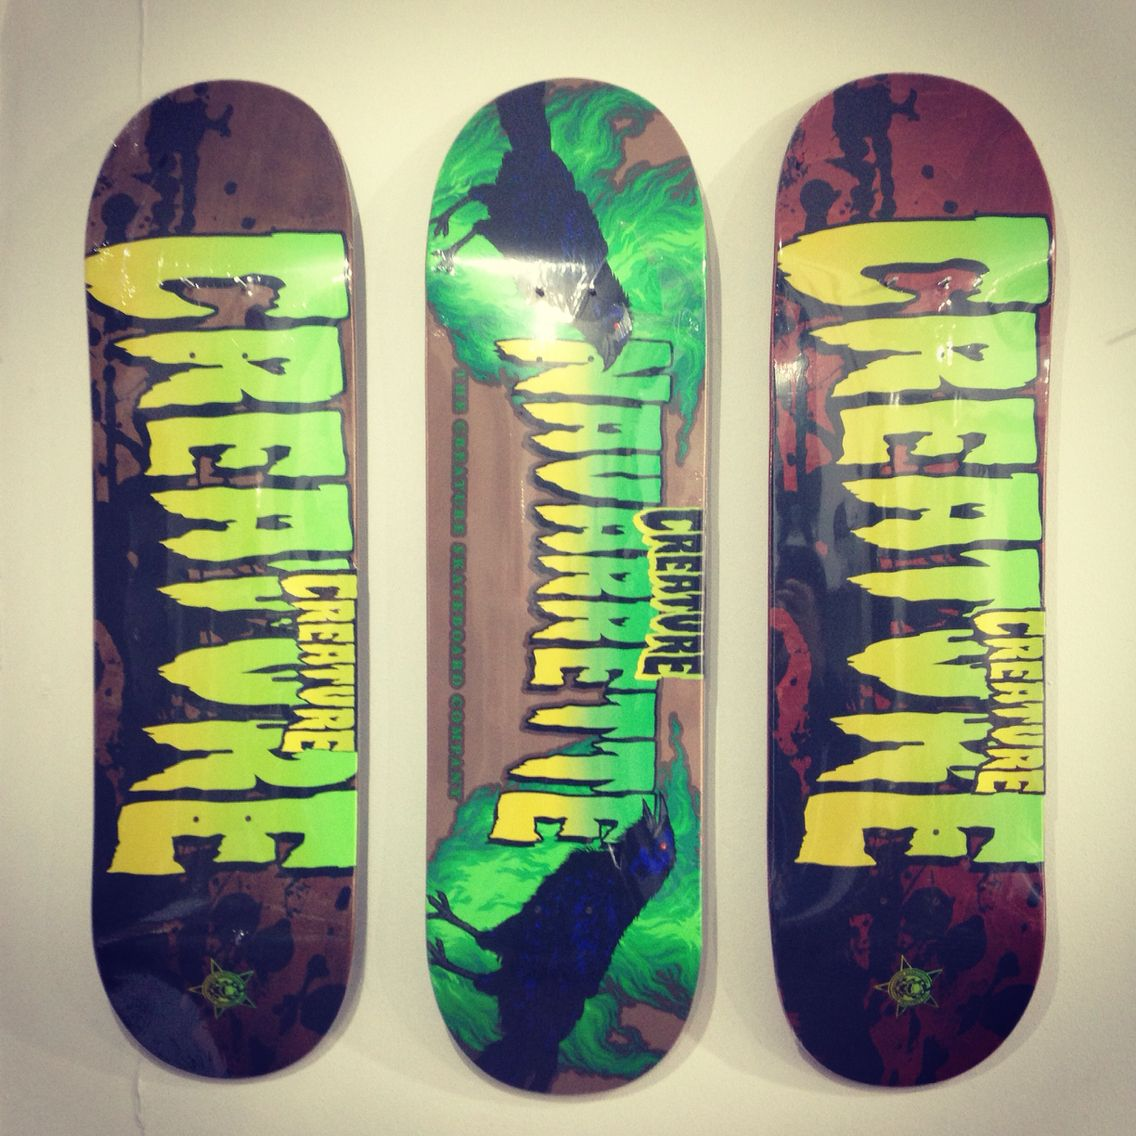 Collection of classic Creature Skateboards Graphics